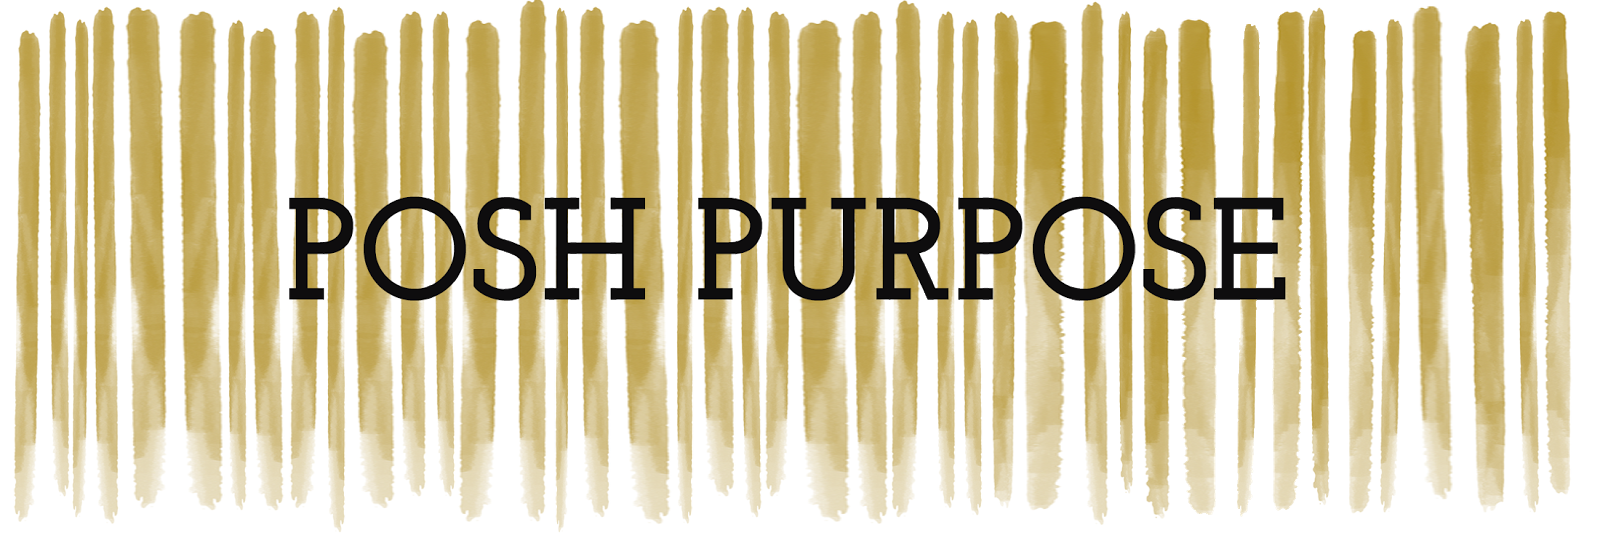 Posh Purpose